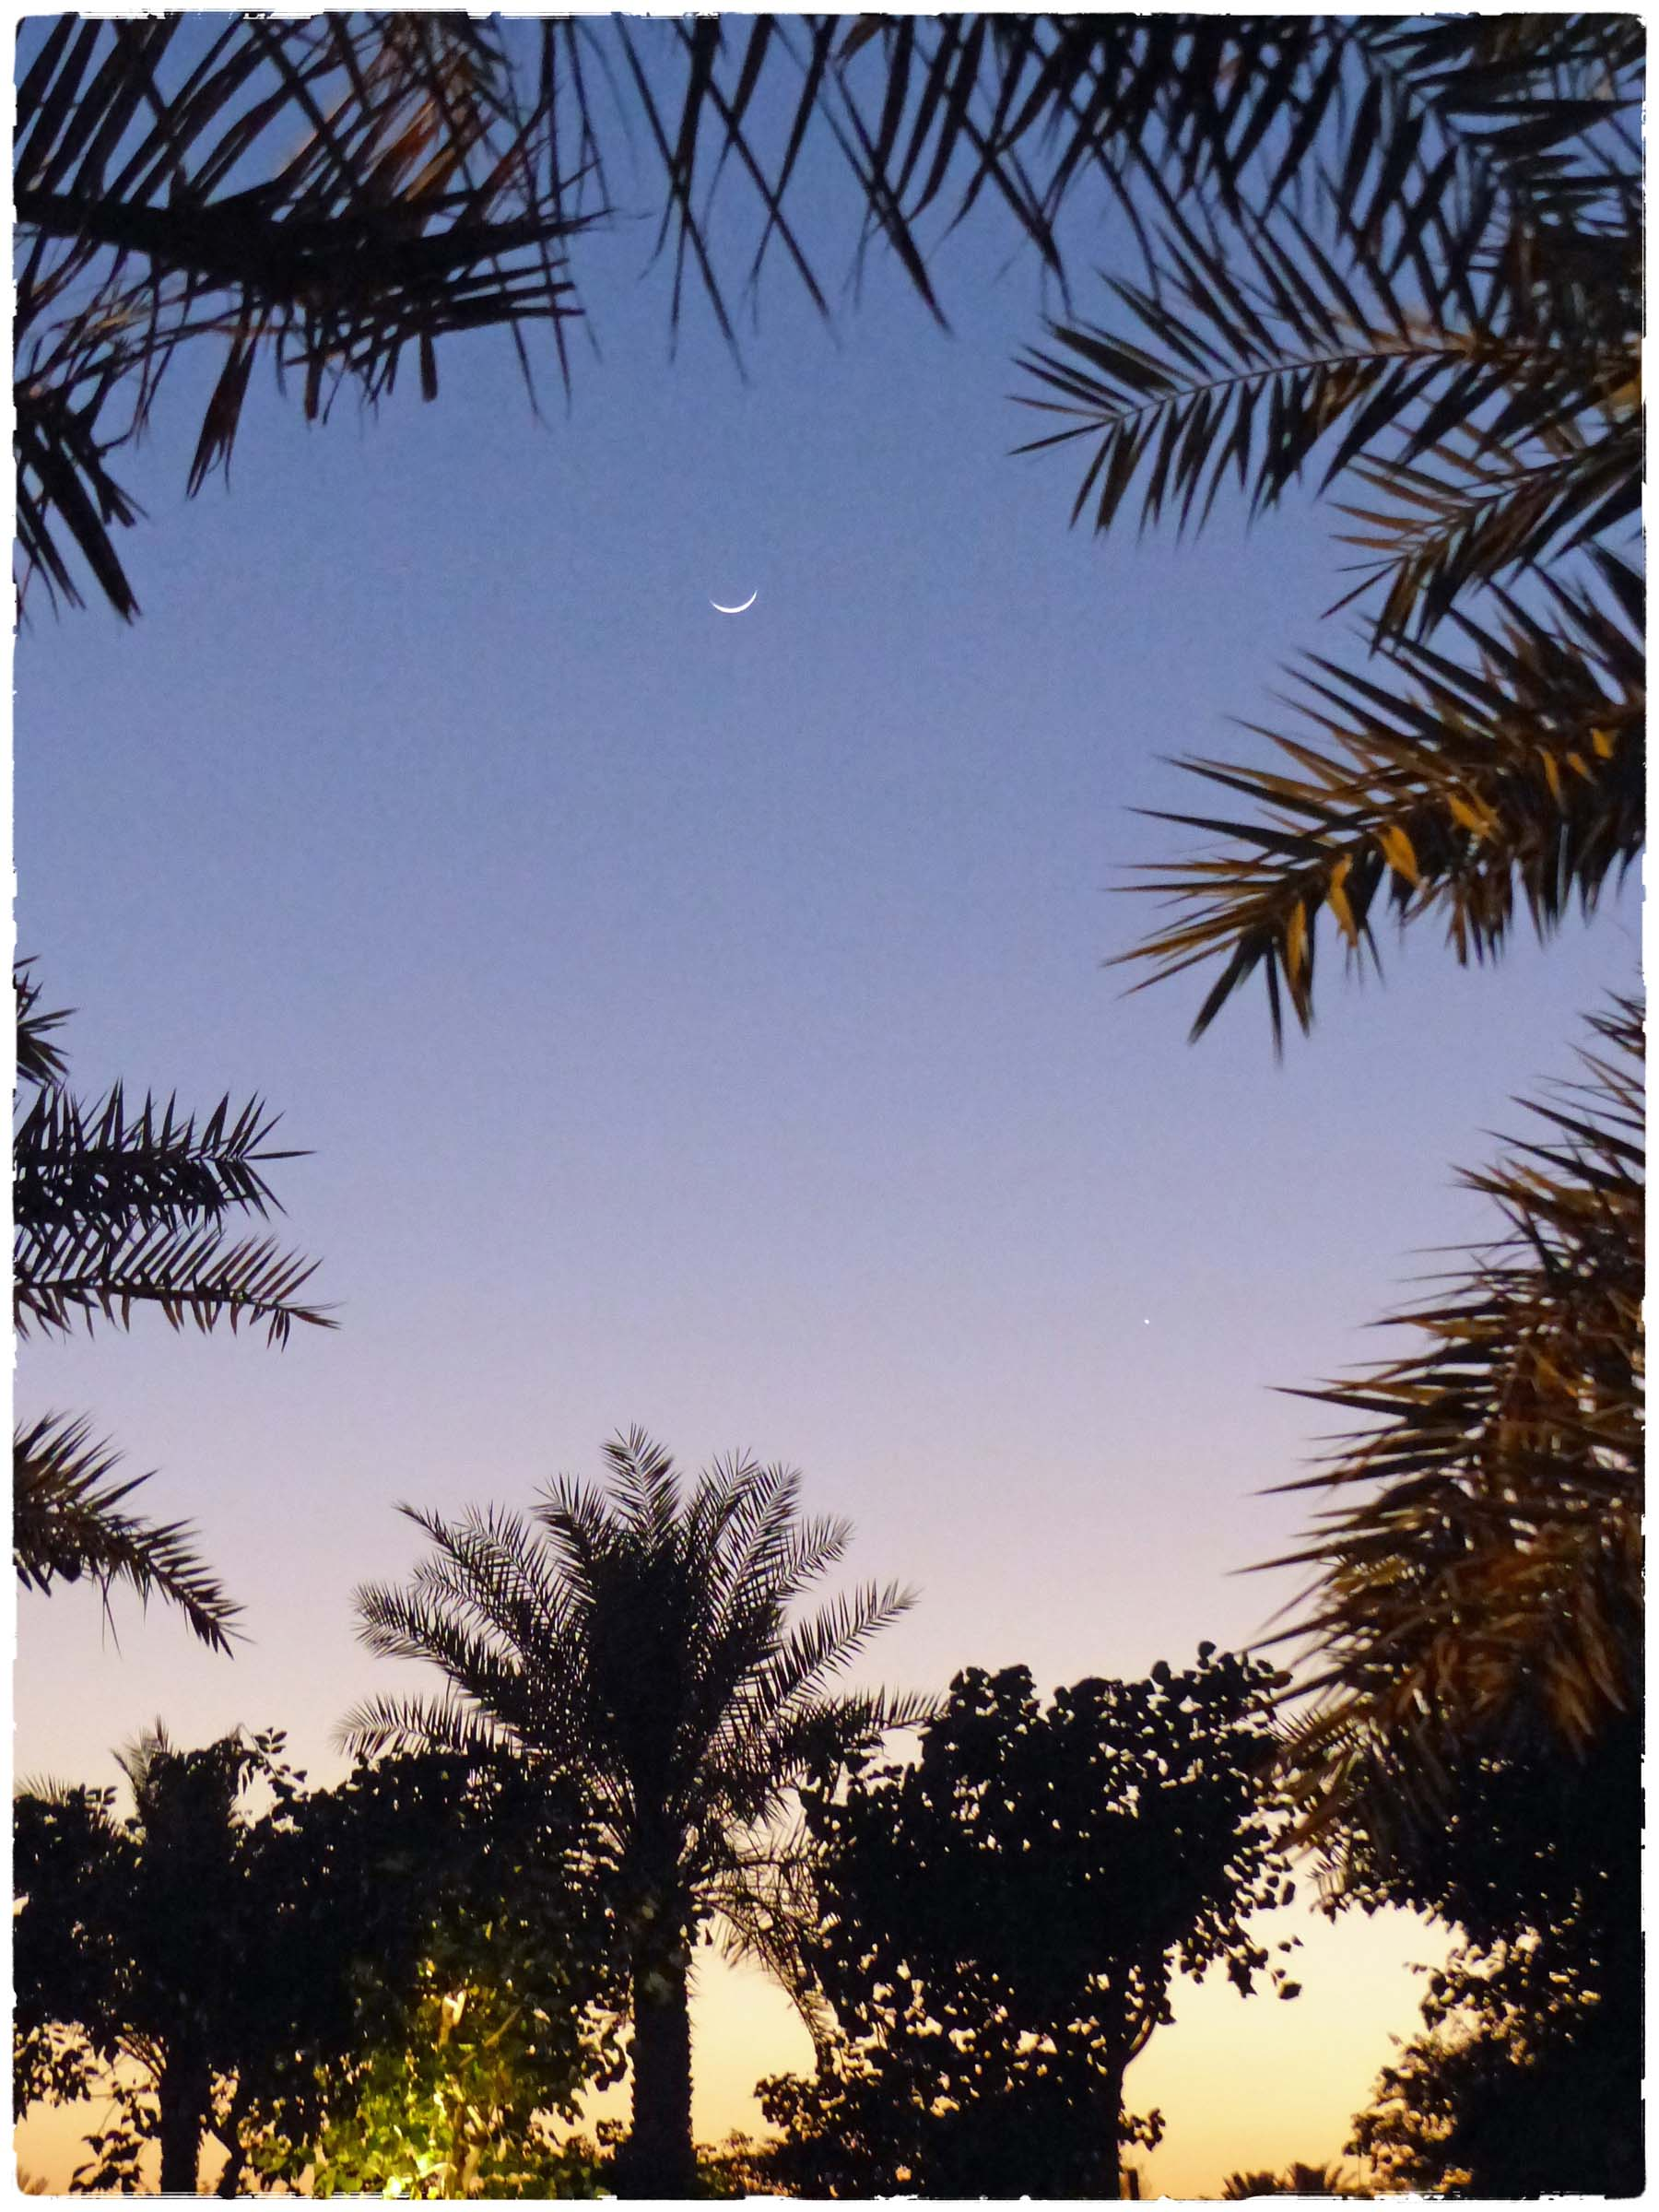 Sunset with palm trees and fine crescent moon